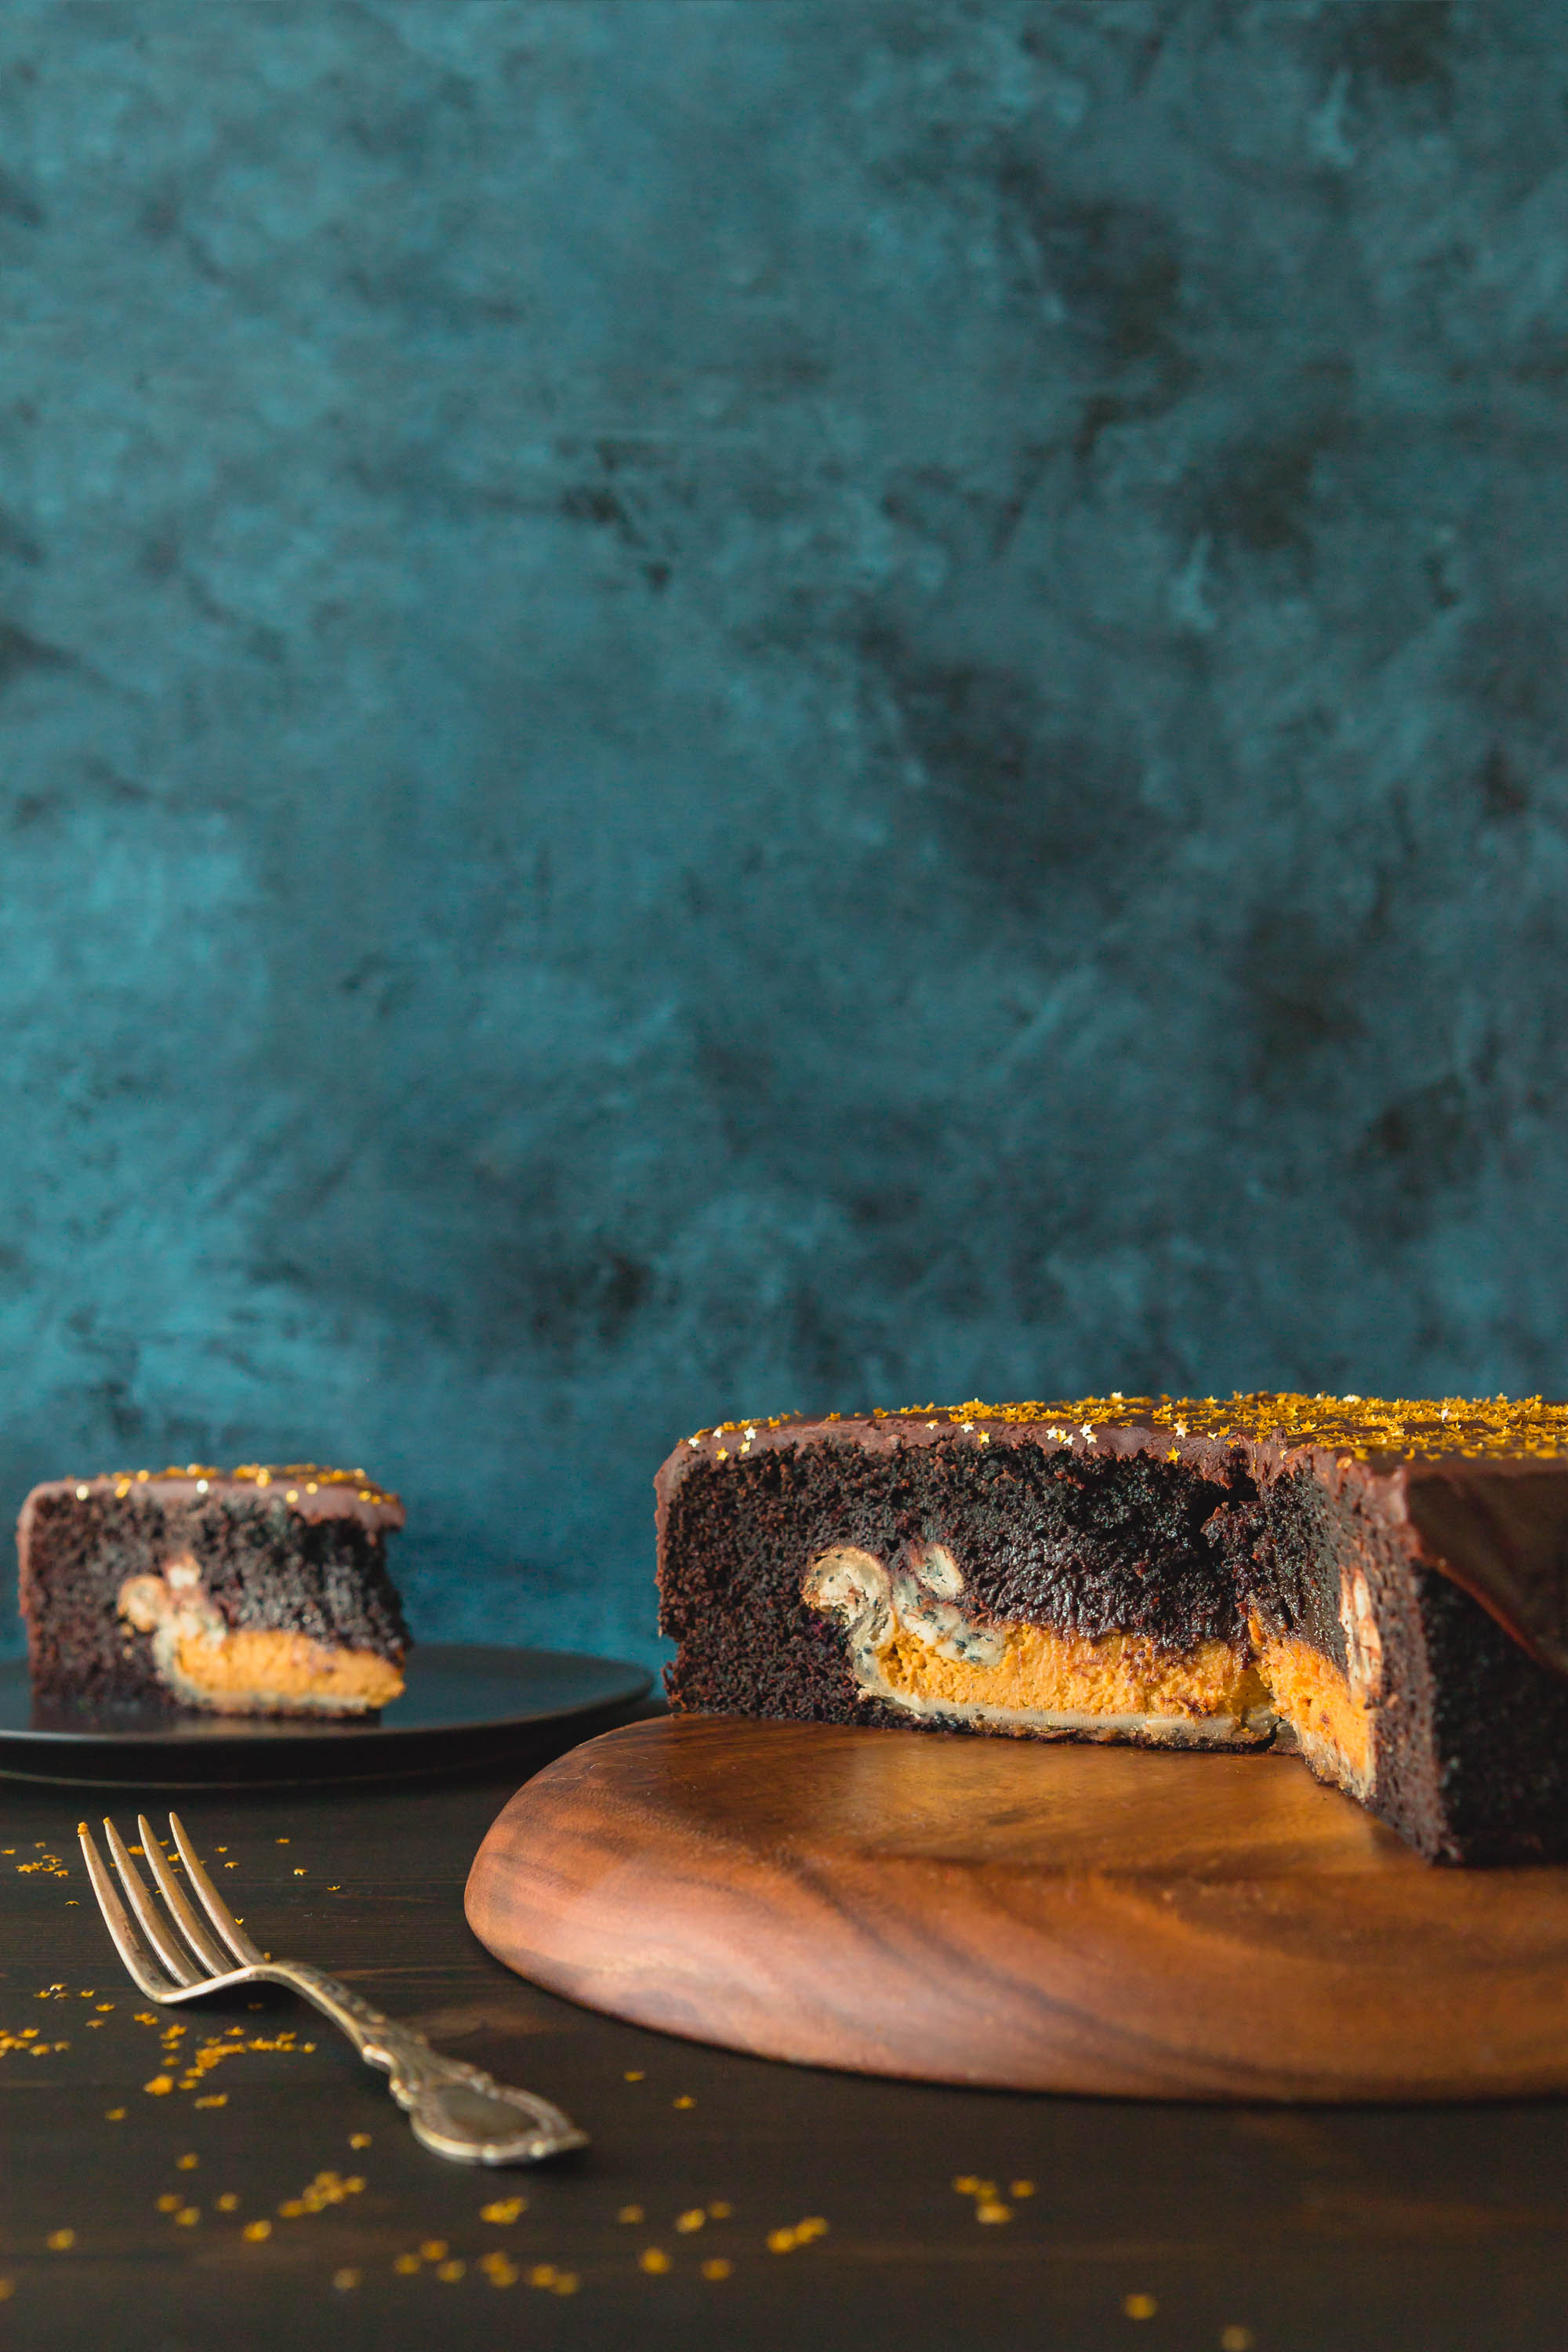 Chocolate Cake with a Pumpkin Pie Inside | THE ROAD TO HONEY